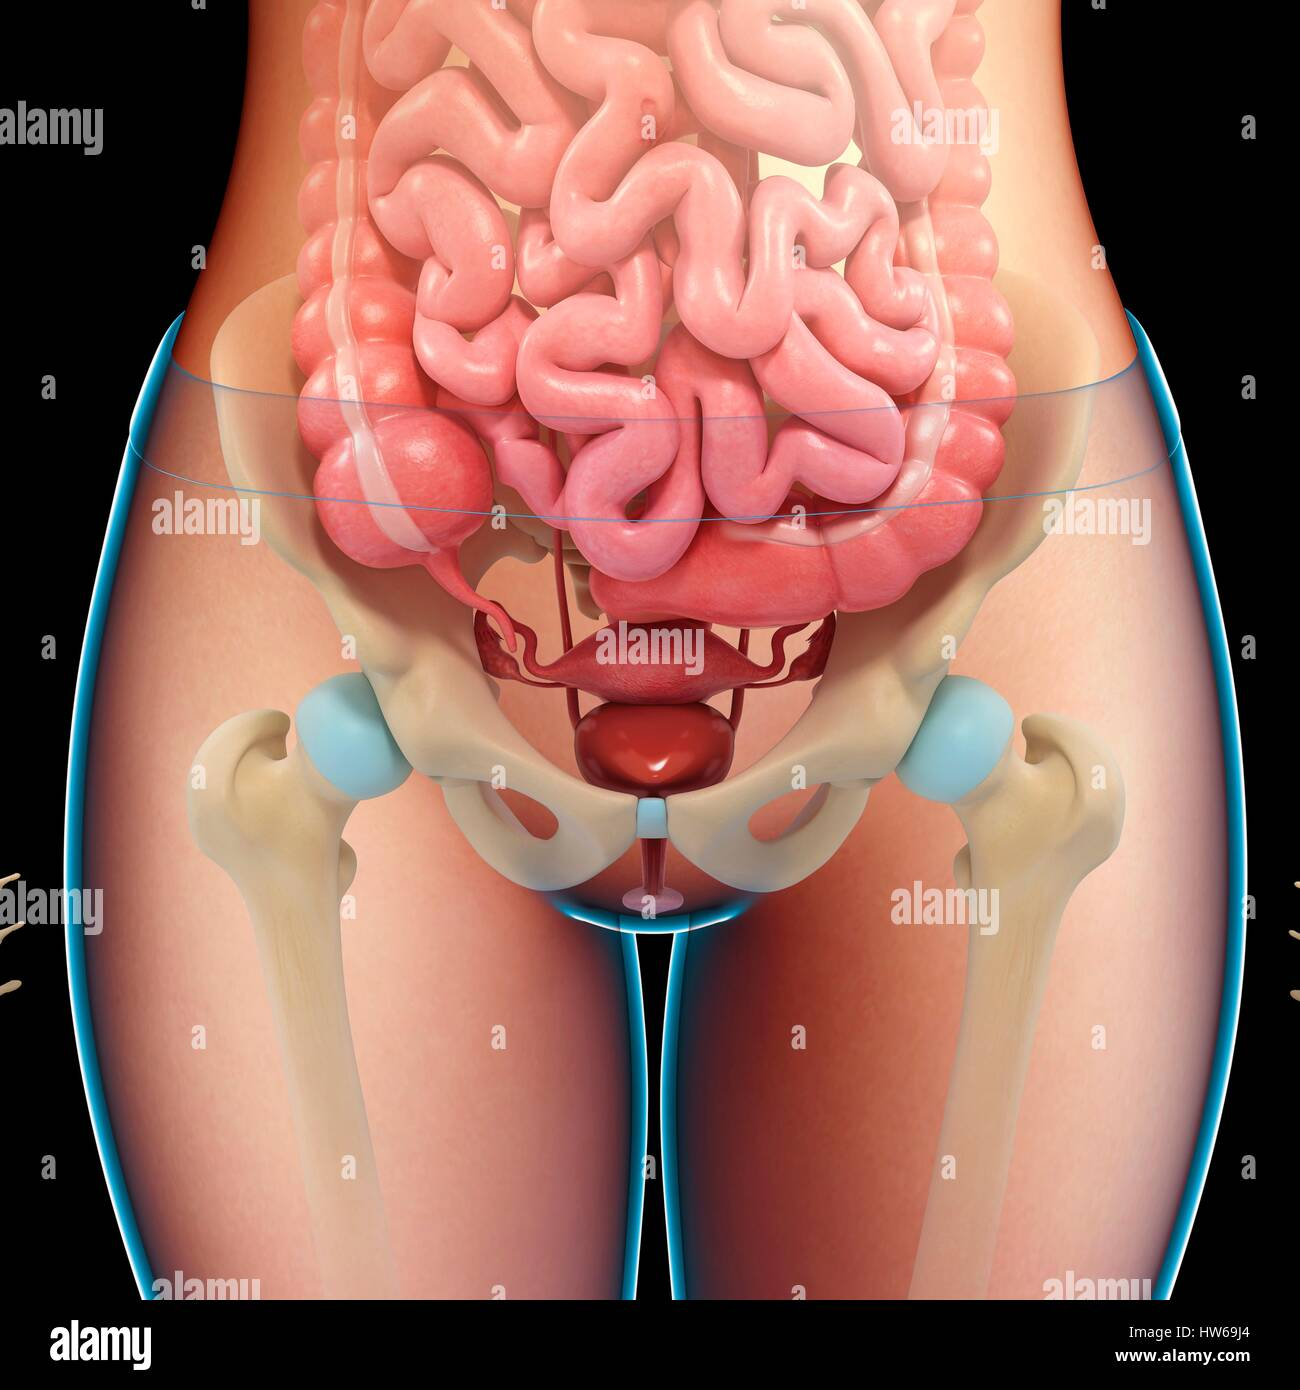 Illustration of female pelvic organs and bones Stock Photo ...